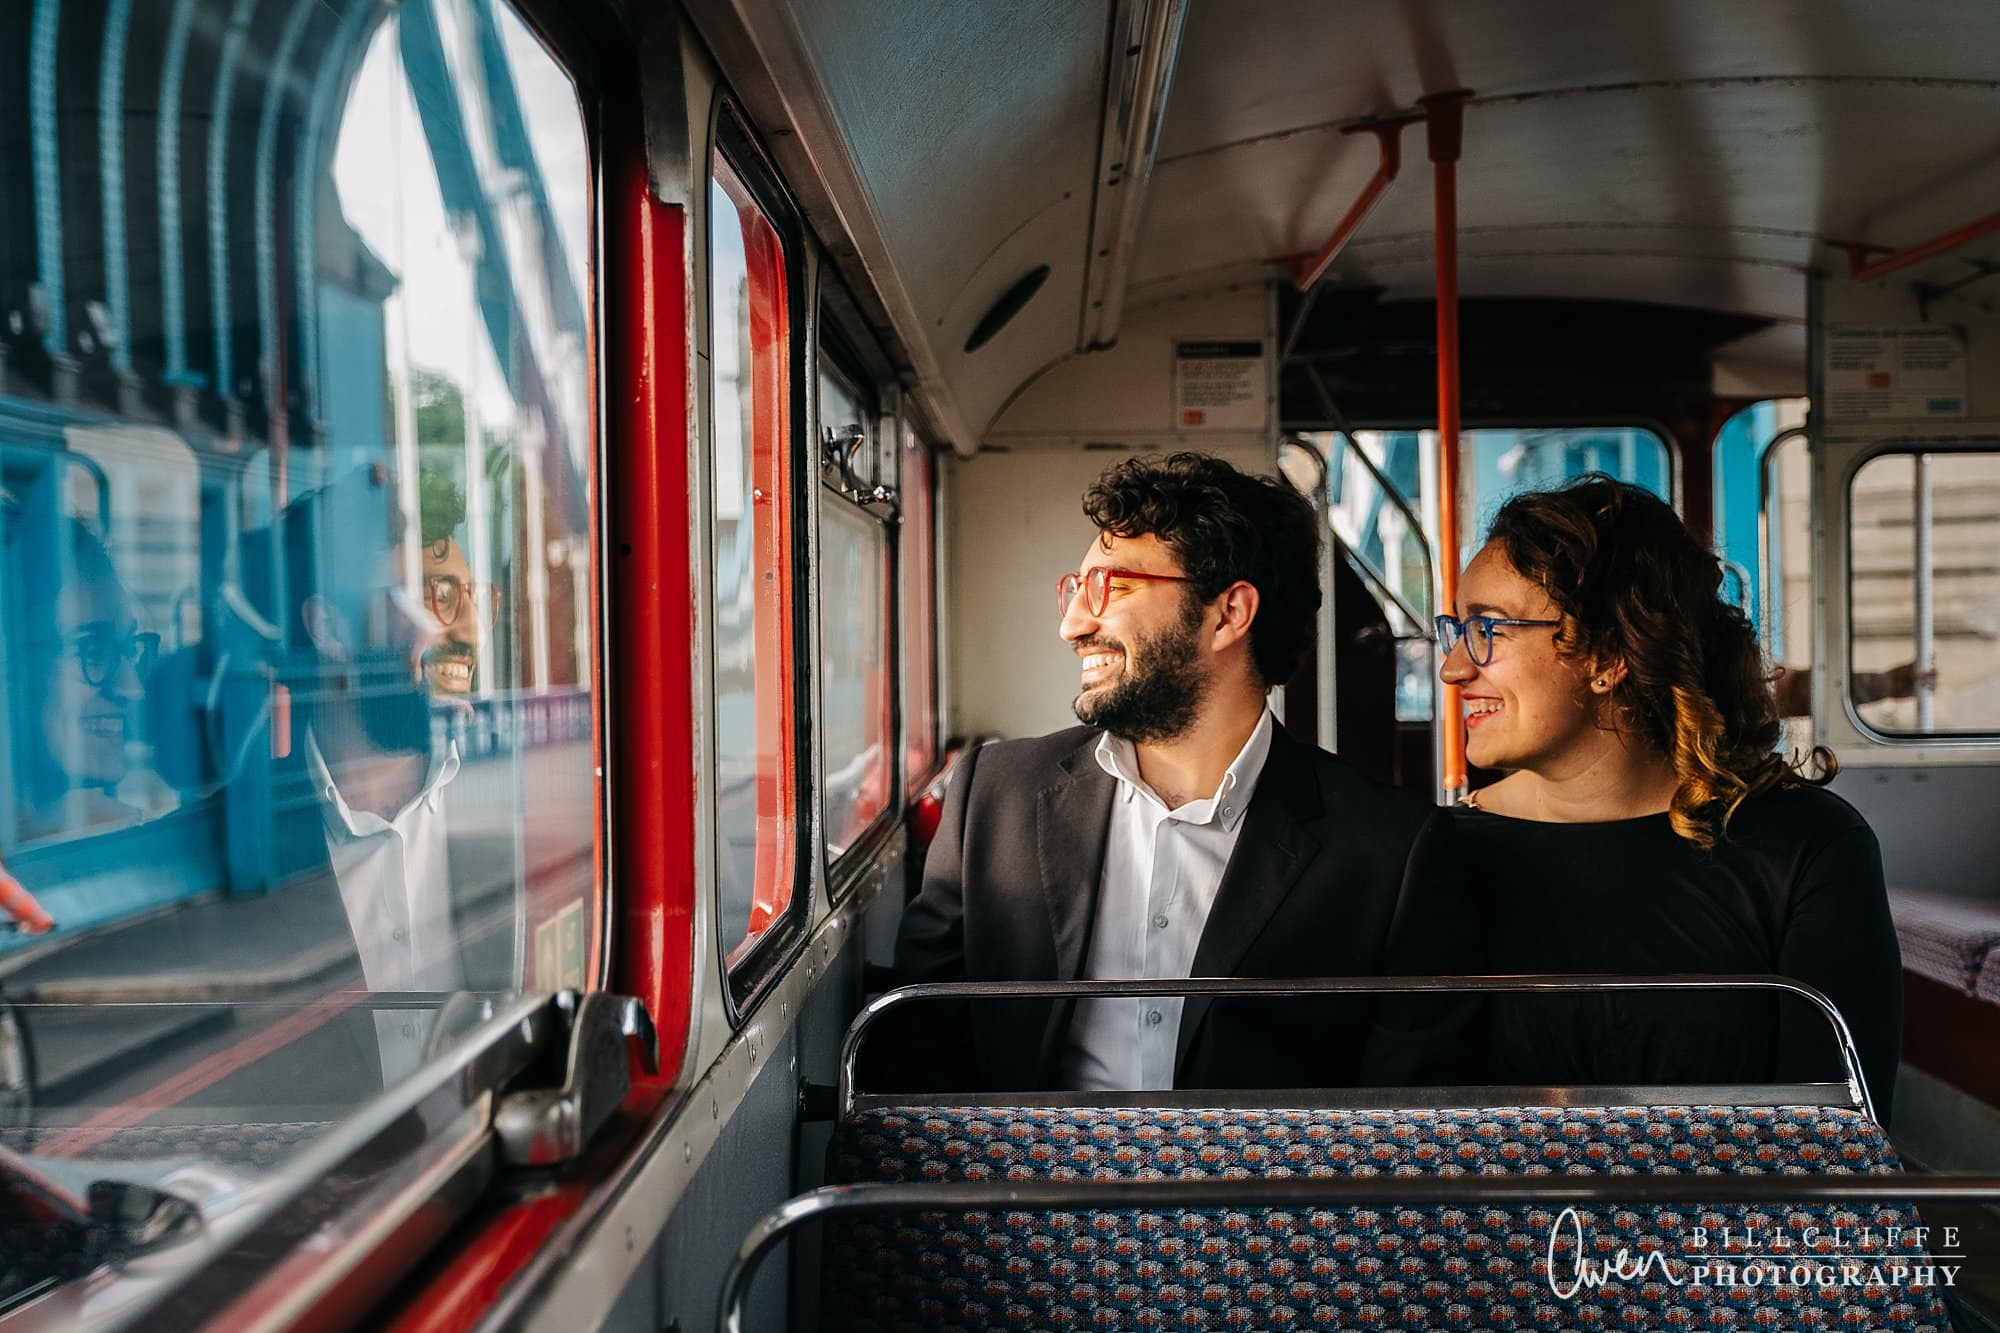 london engagement proposal photographer routemaster gr 009 - A Romantic Marriage Proposal on a London Routemaster Bus